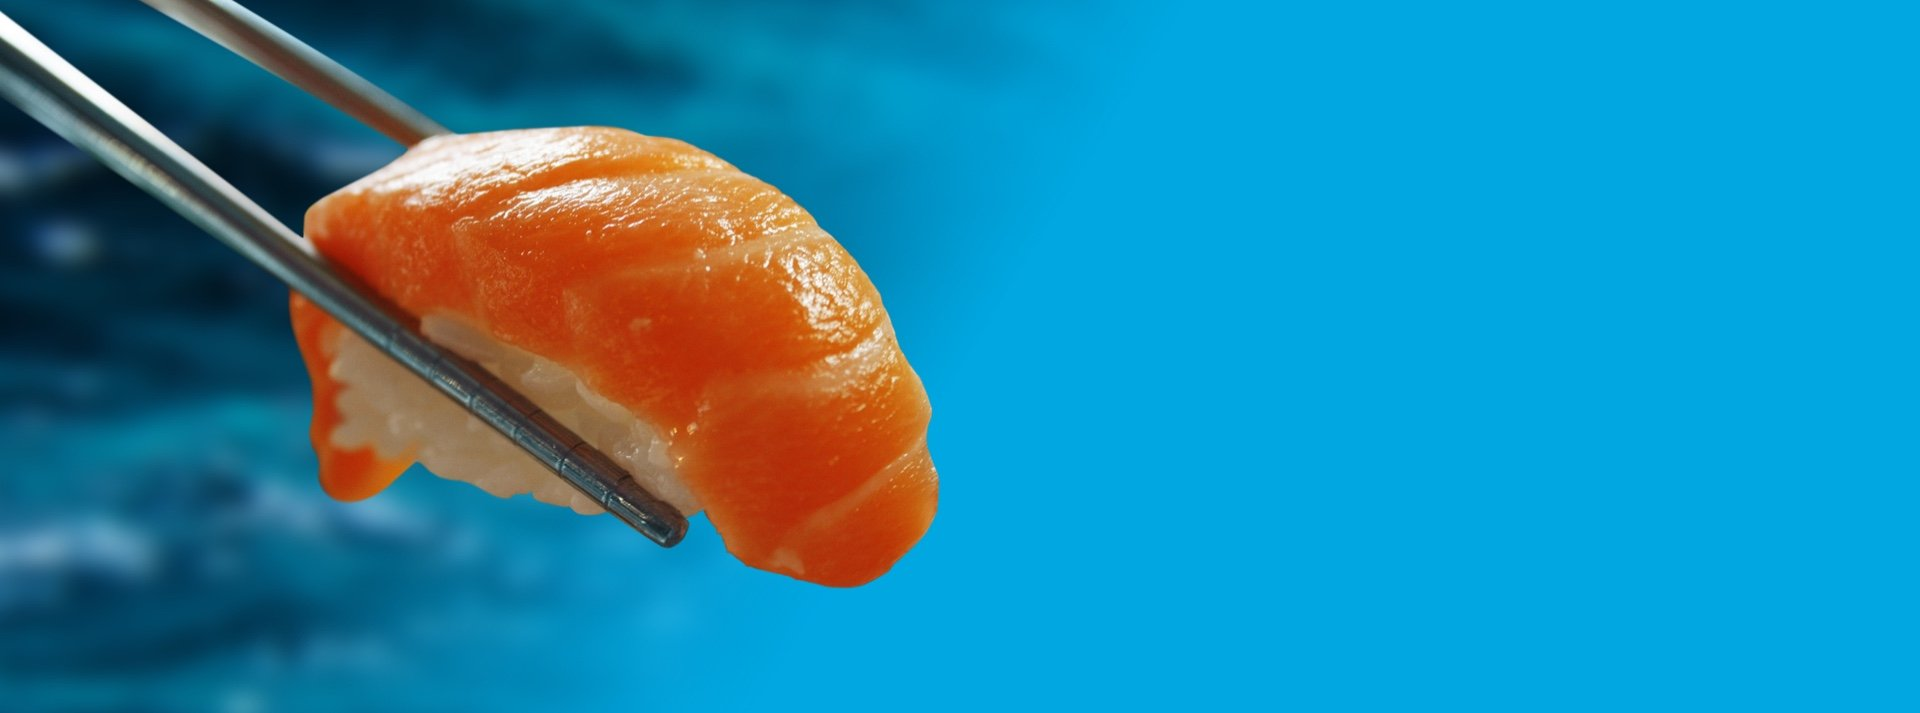 Salmon sushi being held by chopsticks